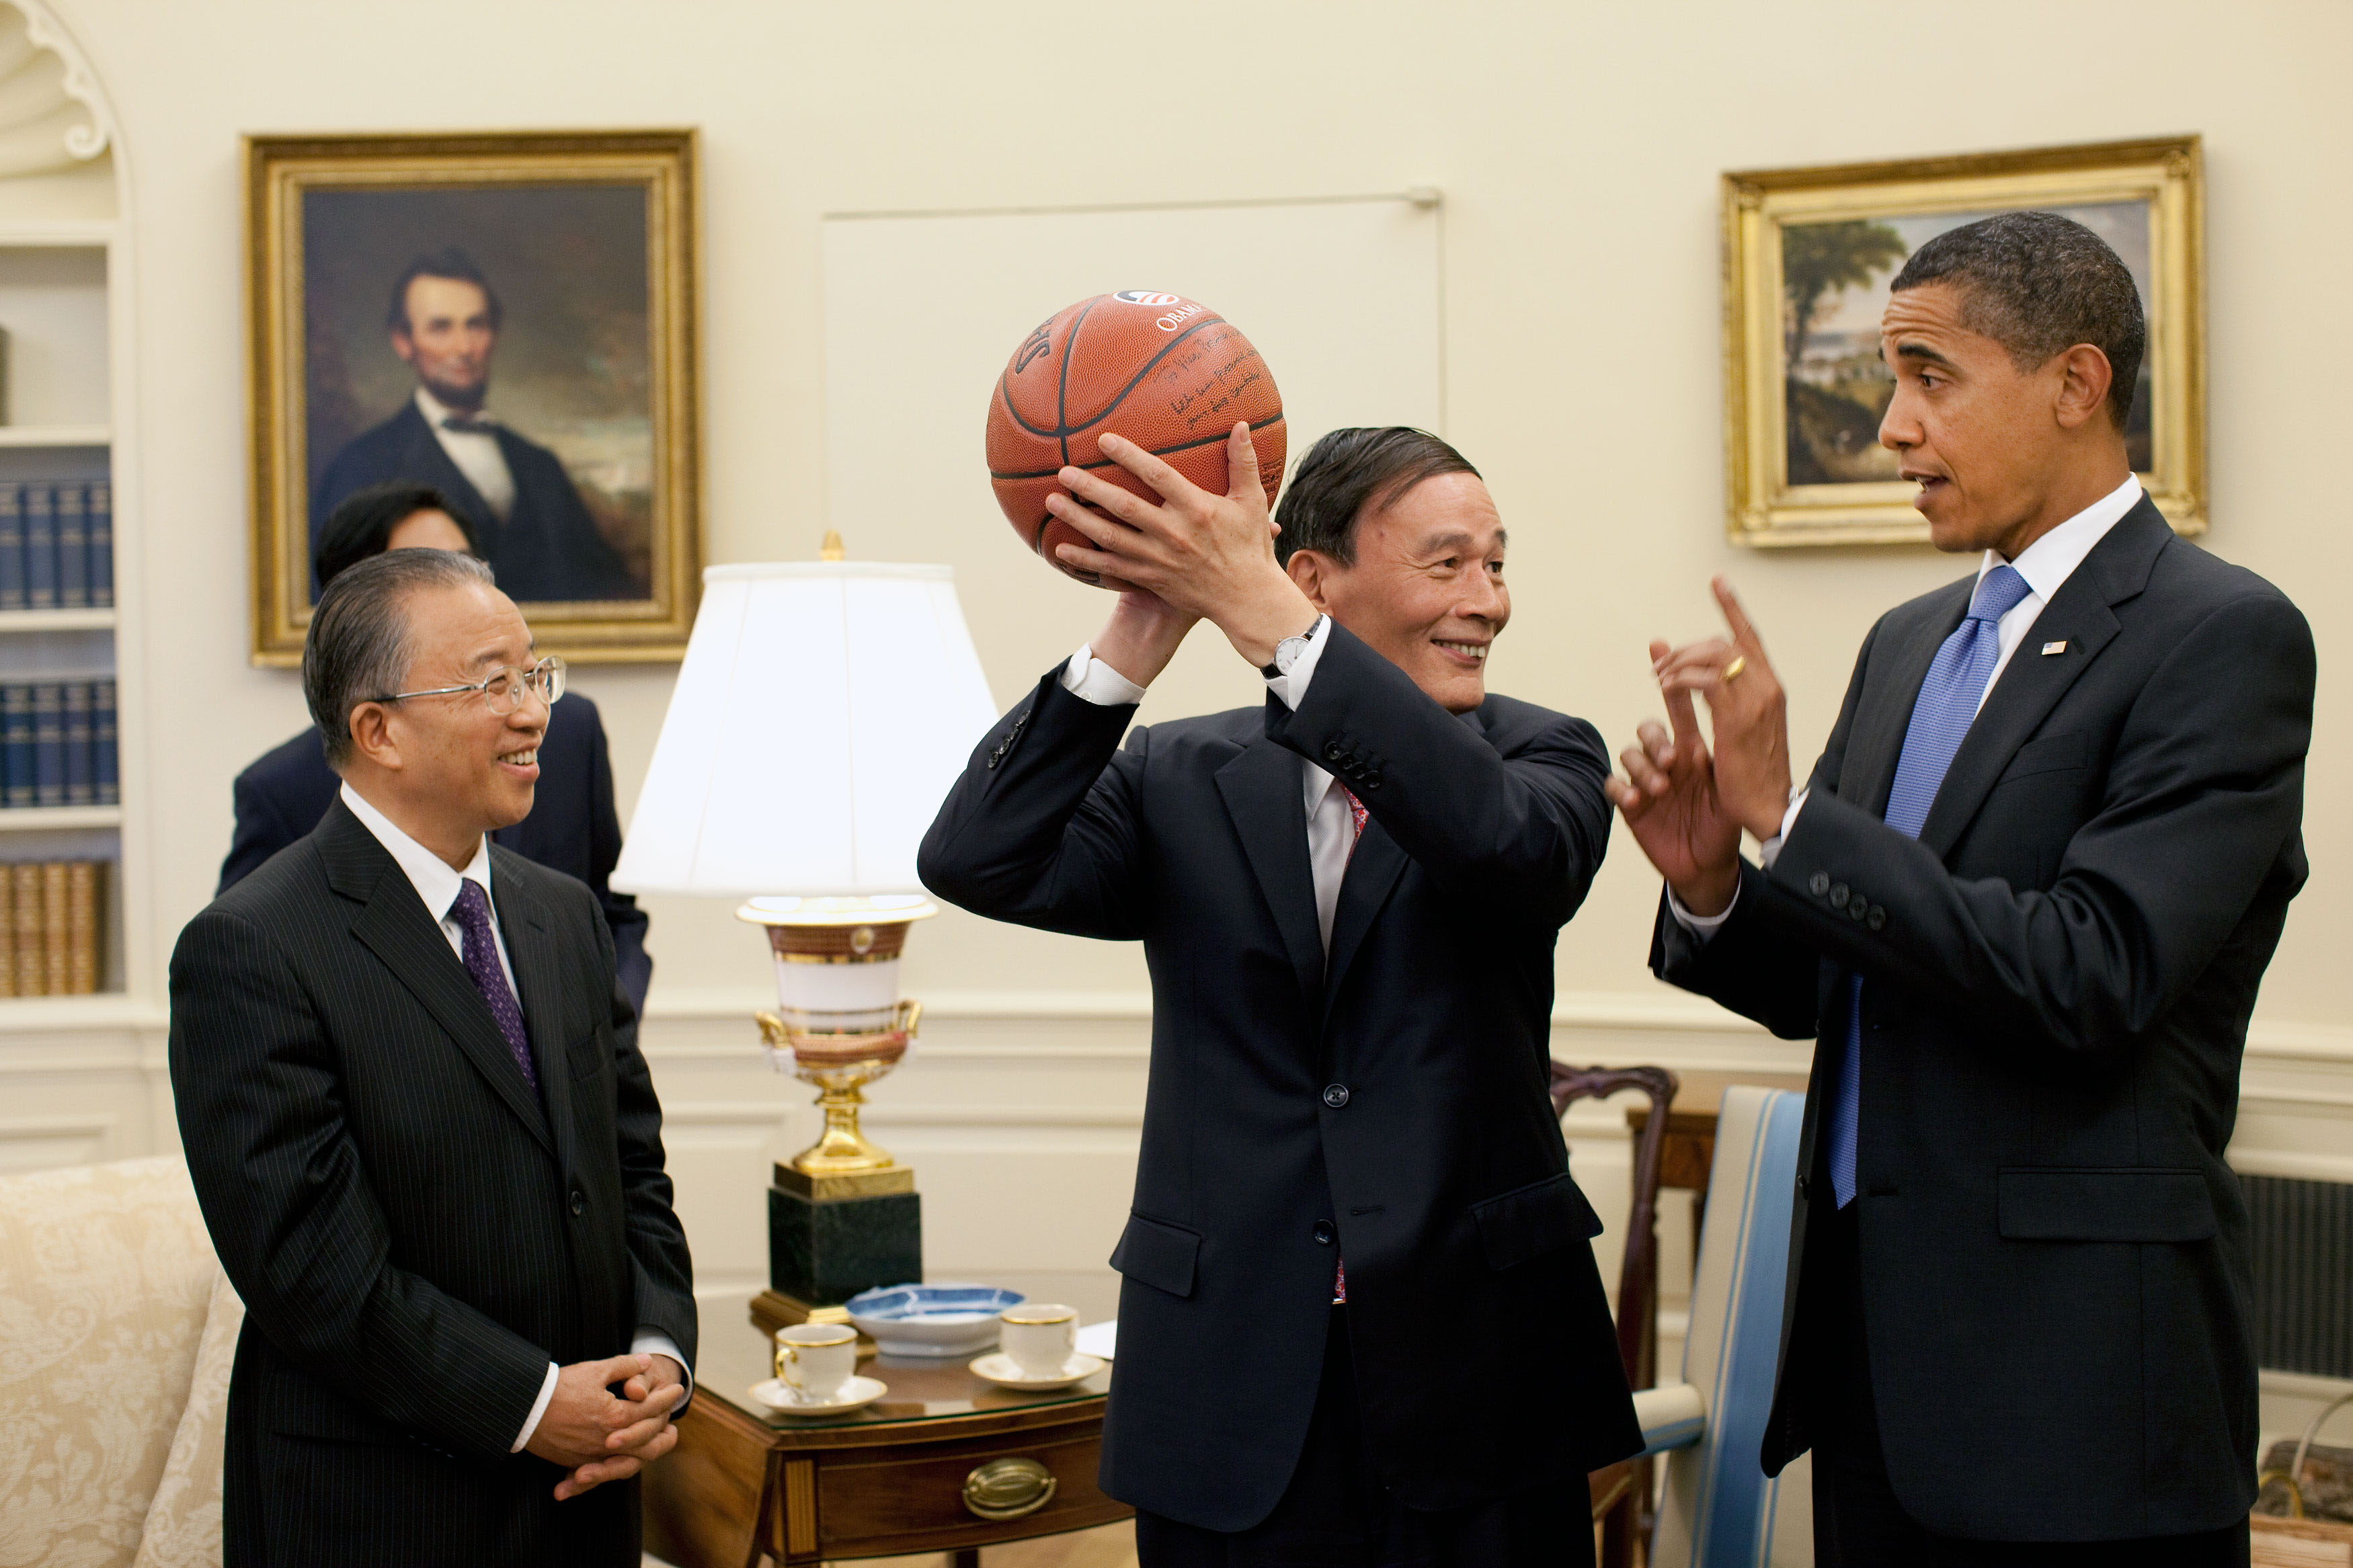 Chinese Vice Premier Wang Qishan, center, holds the basketball given to him by President Barack Obama following their Oval Office meeting Tuesday, July 28, 2009, to discuss the outcomes of the first U.S.-China Strategic and Economic Dialogue.  Looking on at left is Chinese State Councilor Dai Bingguo. (Official White House Photo by Pete Souza)